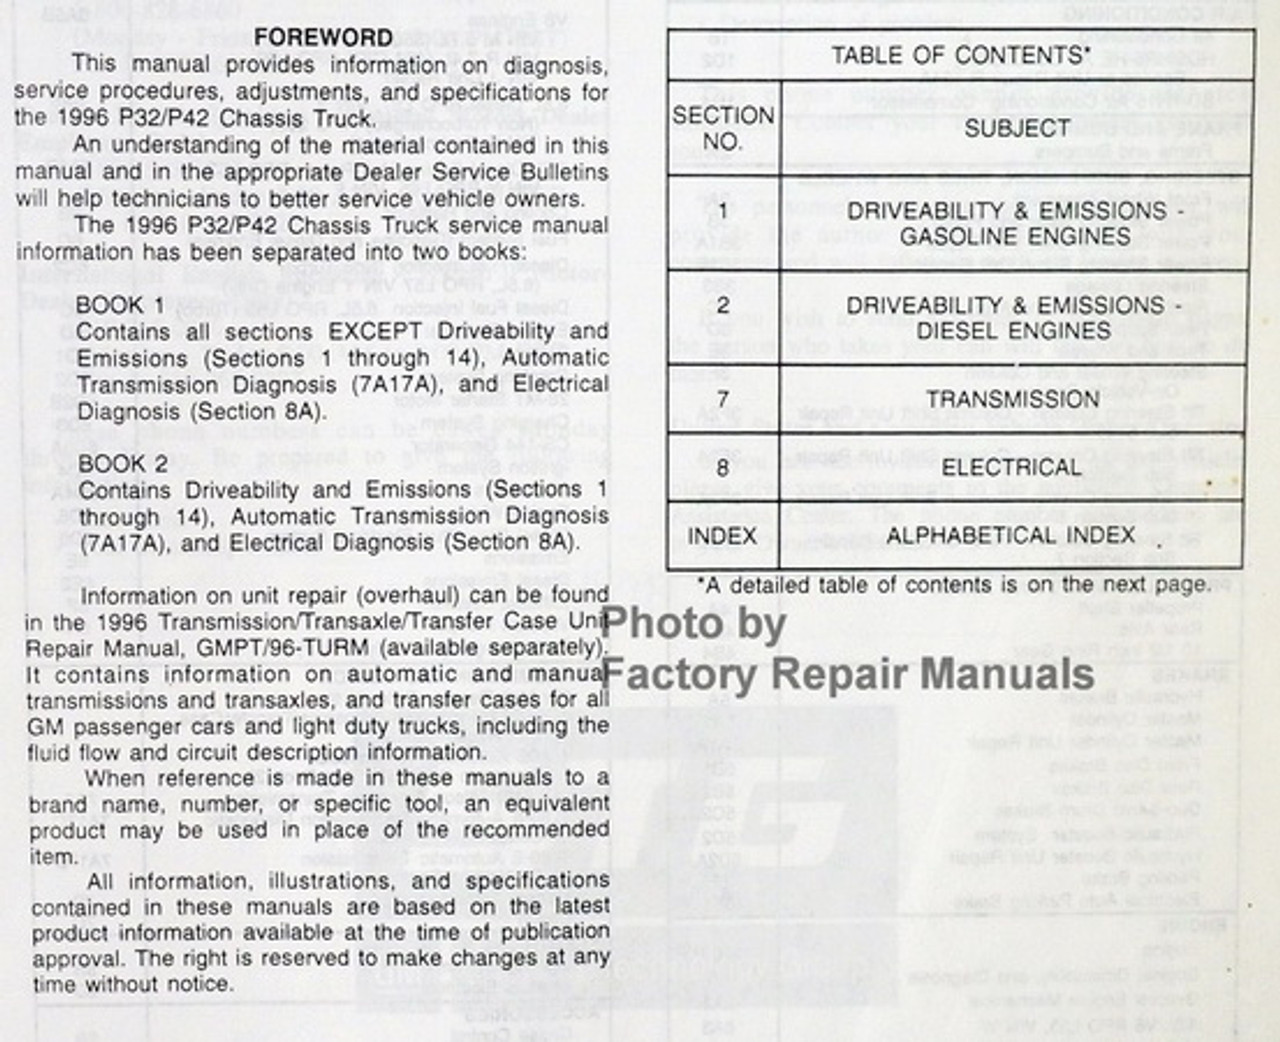 1996 GMC Chevy P32 P42 P3 Motorhome Chassis Factory Service Repair Manual  Set - Factory Repair Manuals | Chevrolet P 32 Motorhome Engine Diagram |  | Factory Repair Manuals